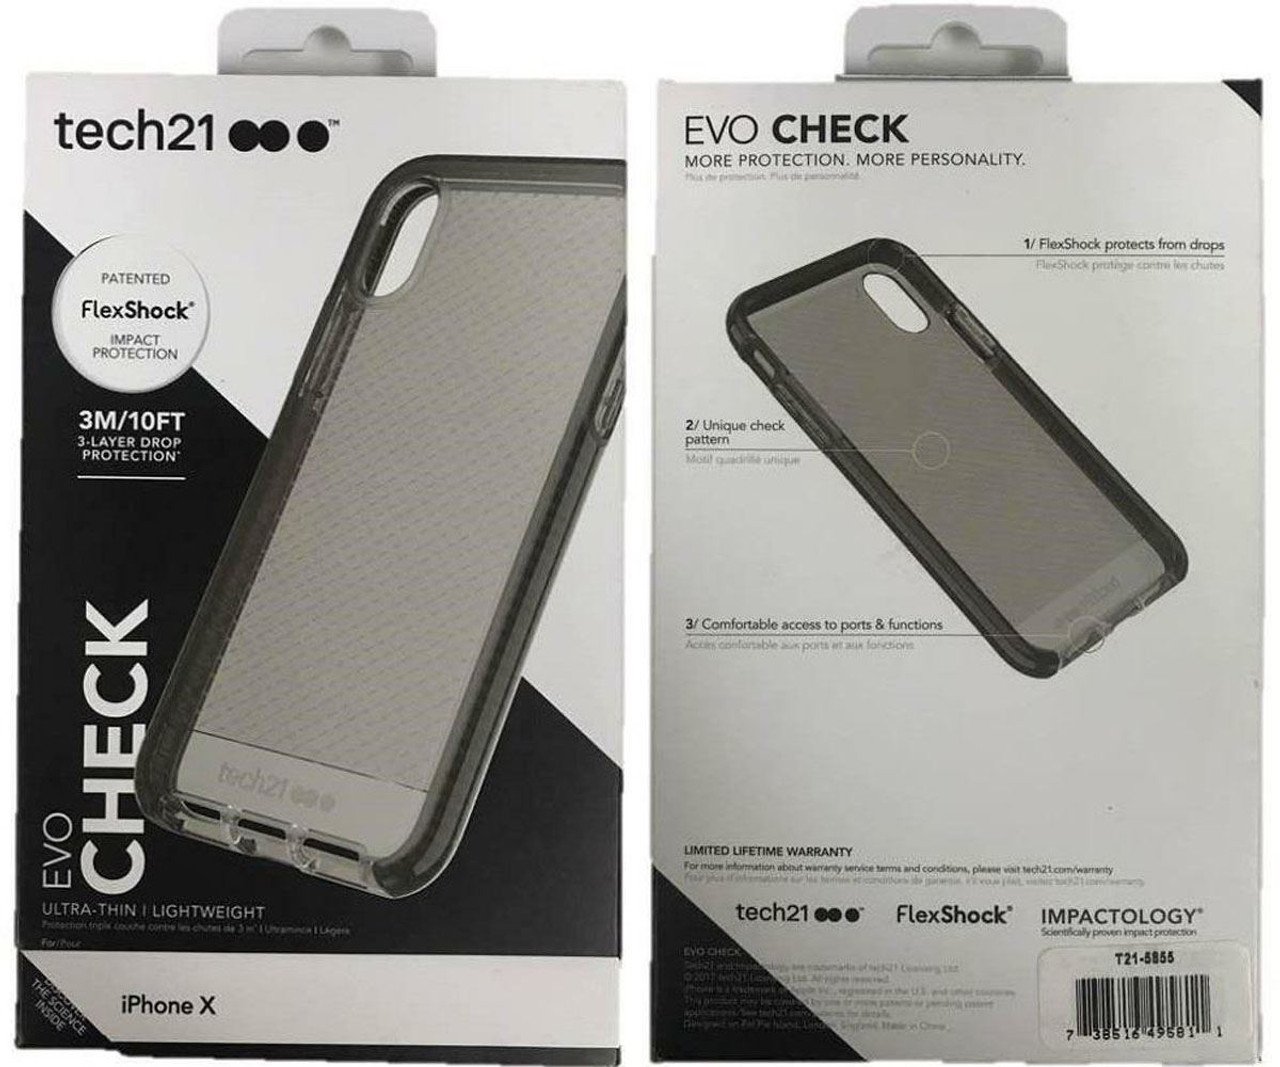 buy online 05143 3cd75 Tech21 Evo Check Case Cover for Apple iPhone X / iPhone XS - Smokey Black